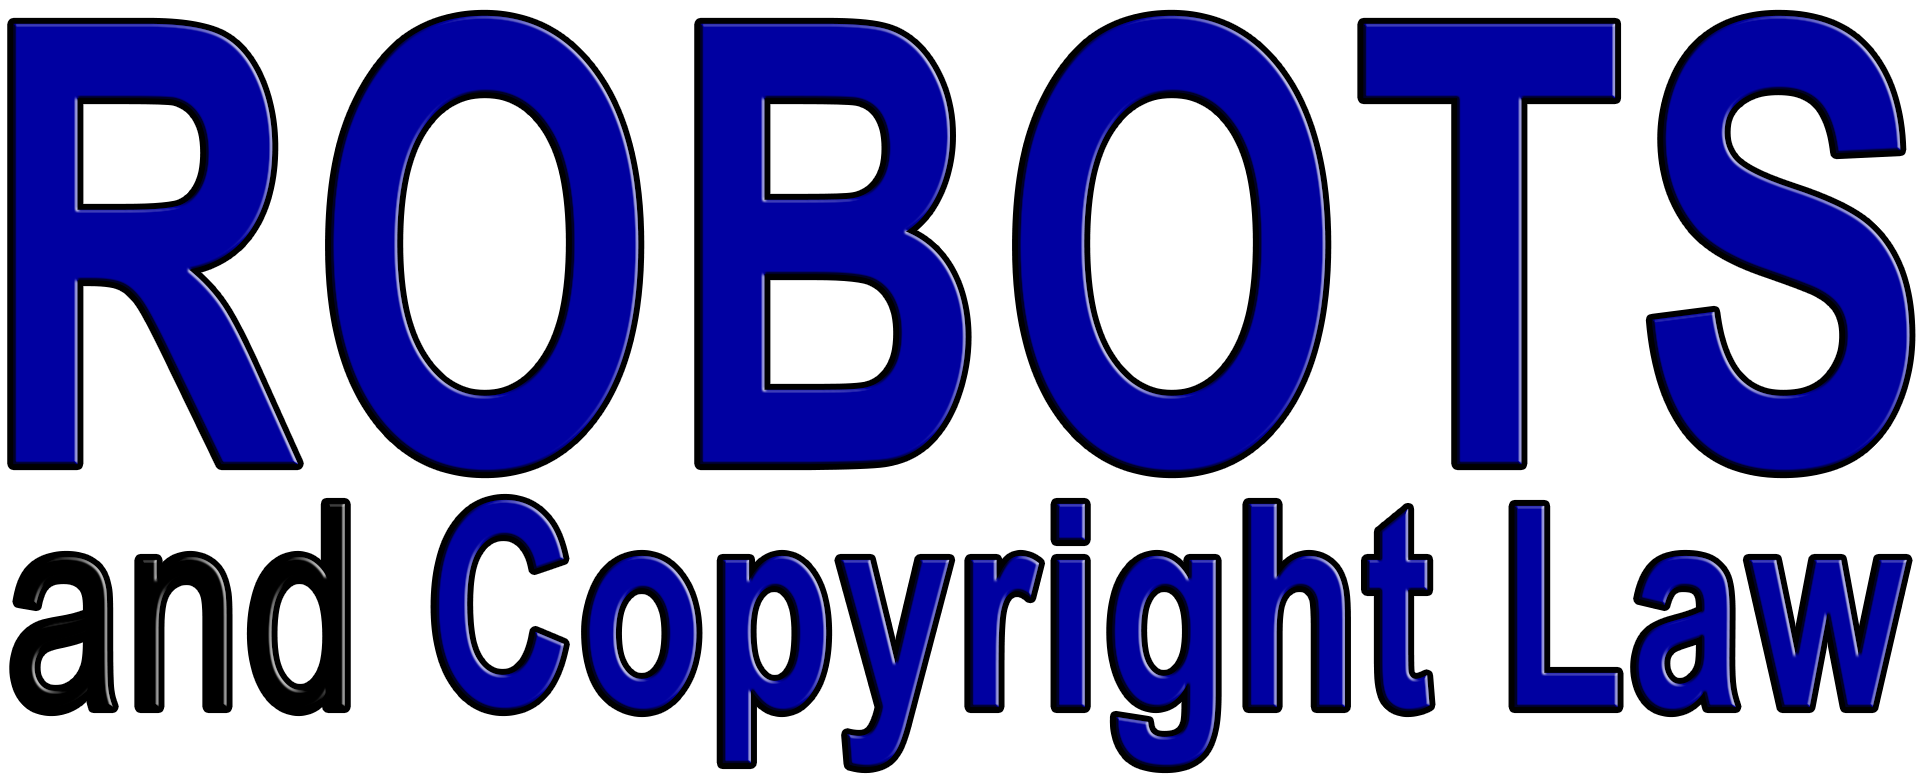 ROBOTS and Copyright Law